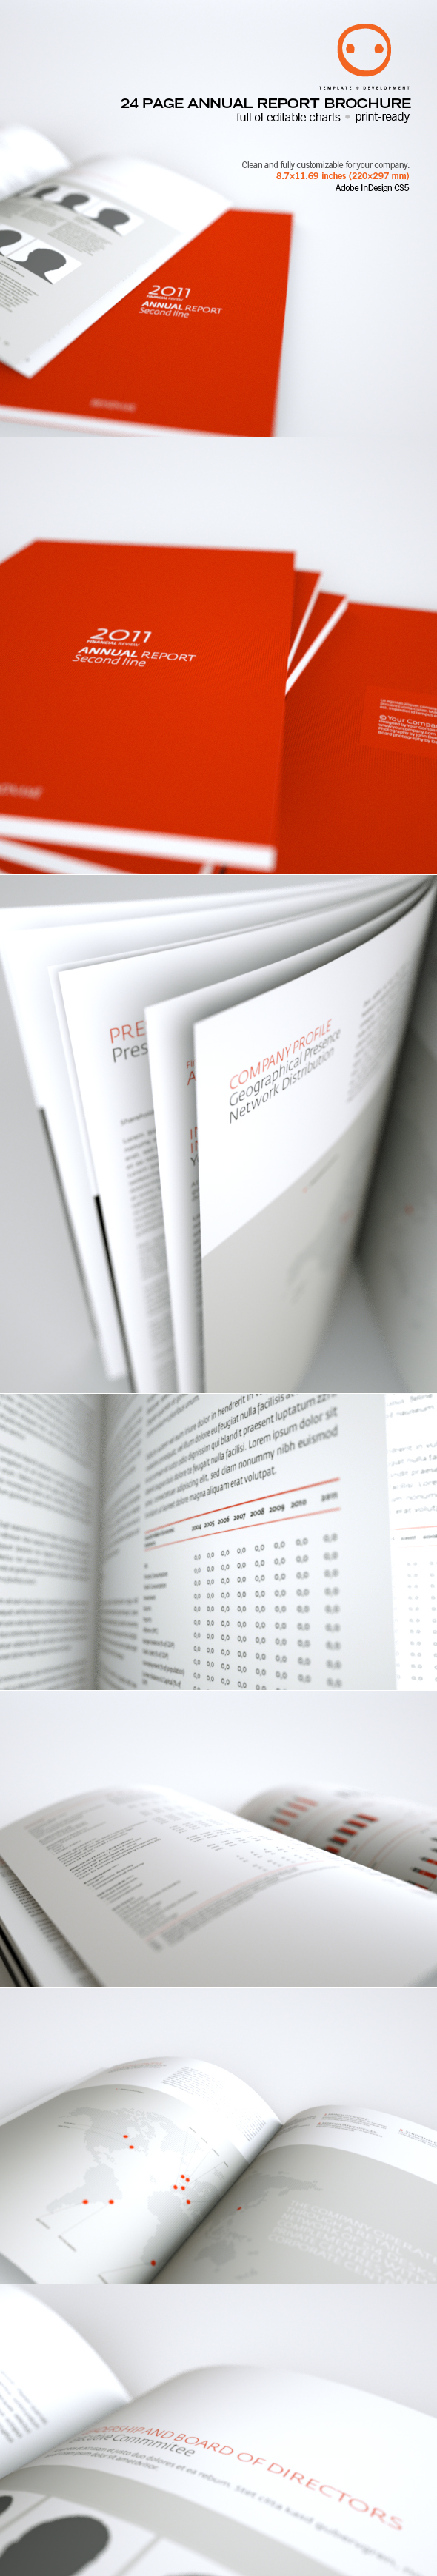 Annual Report Brochure  Design Layout    Annual